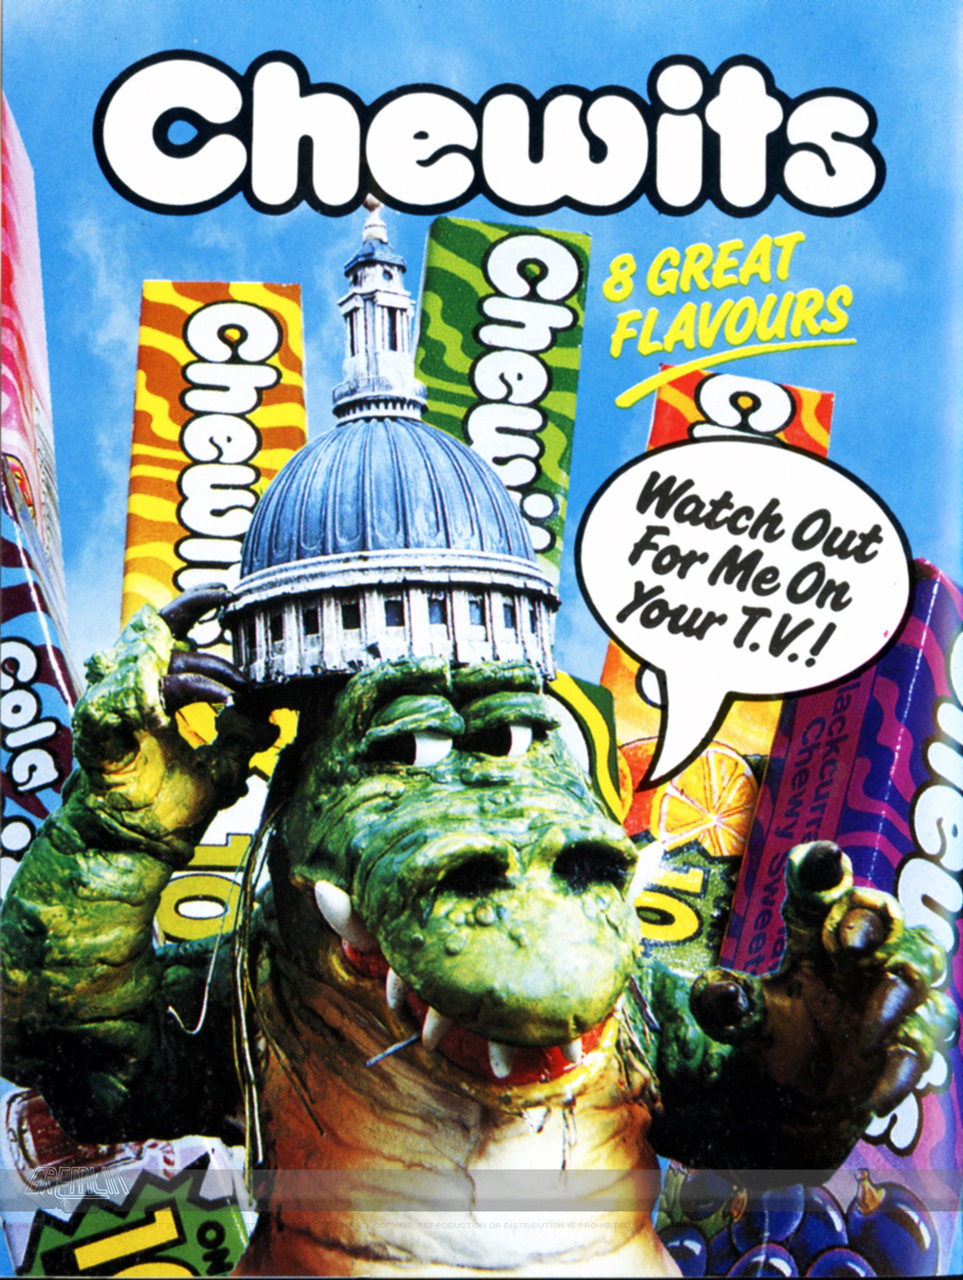 Chewits – Inbox Advert